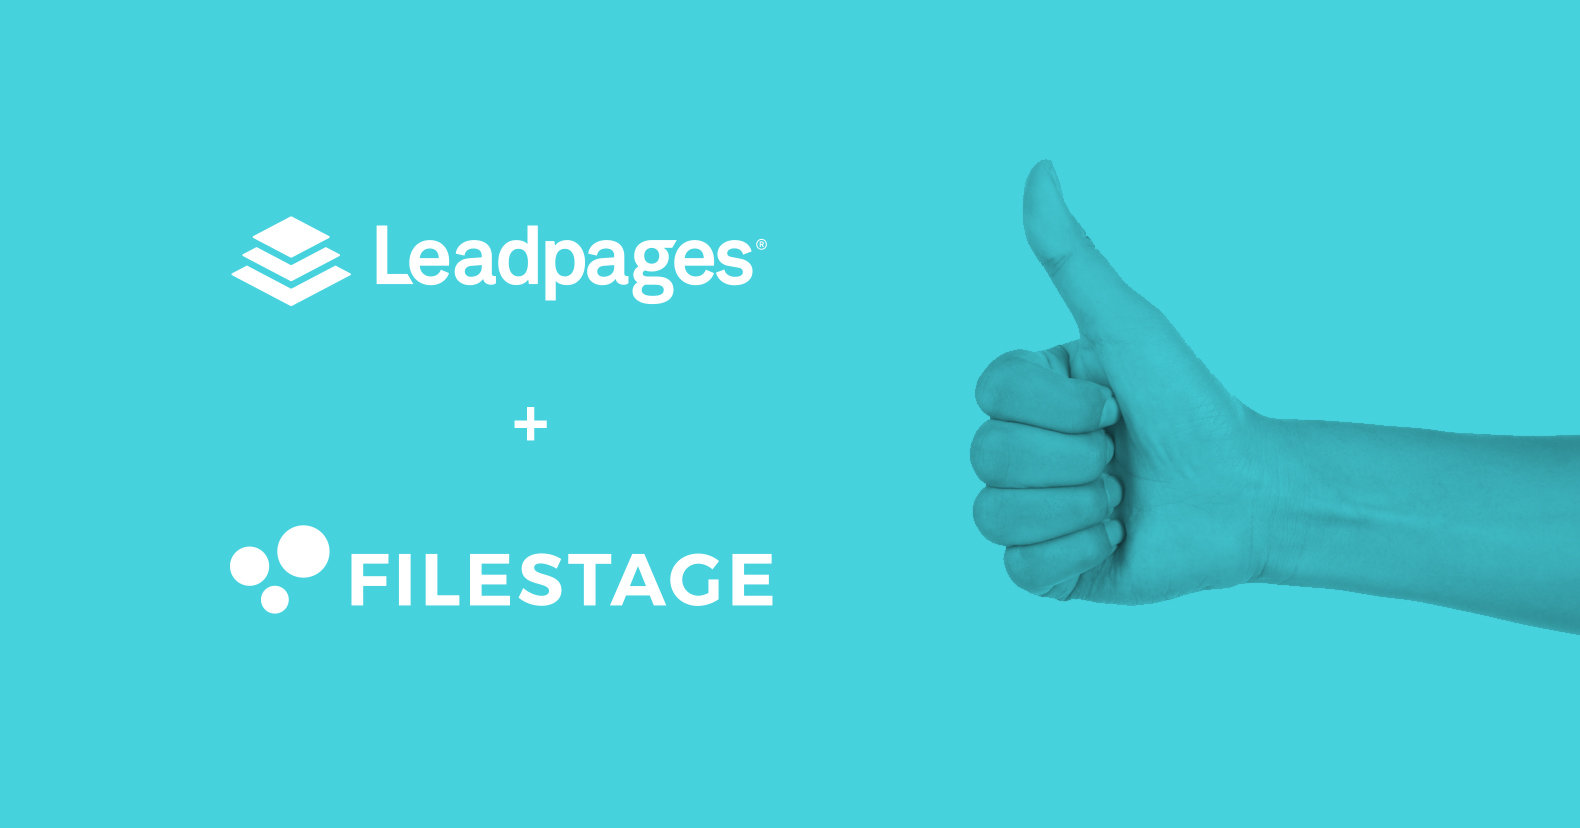 streamline digital campaign approval with Filestage